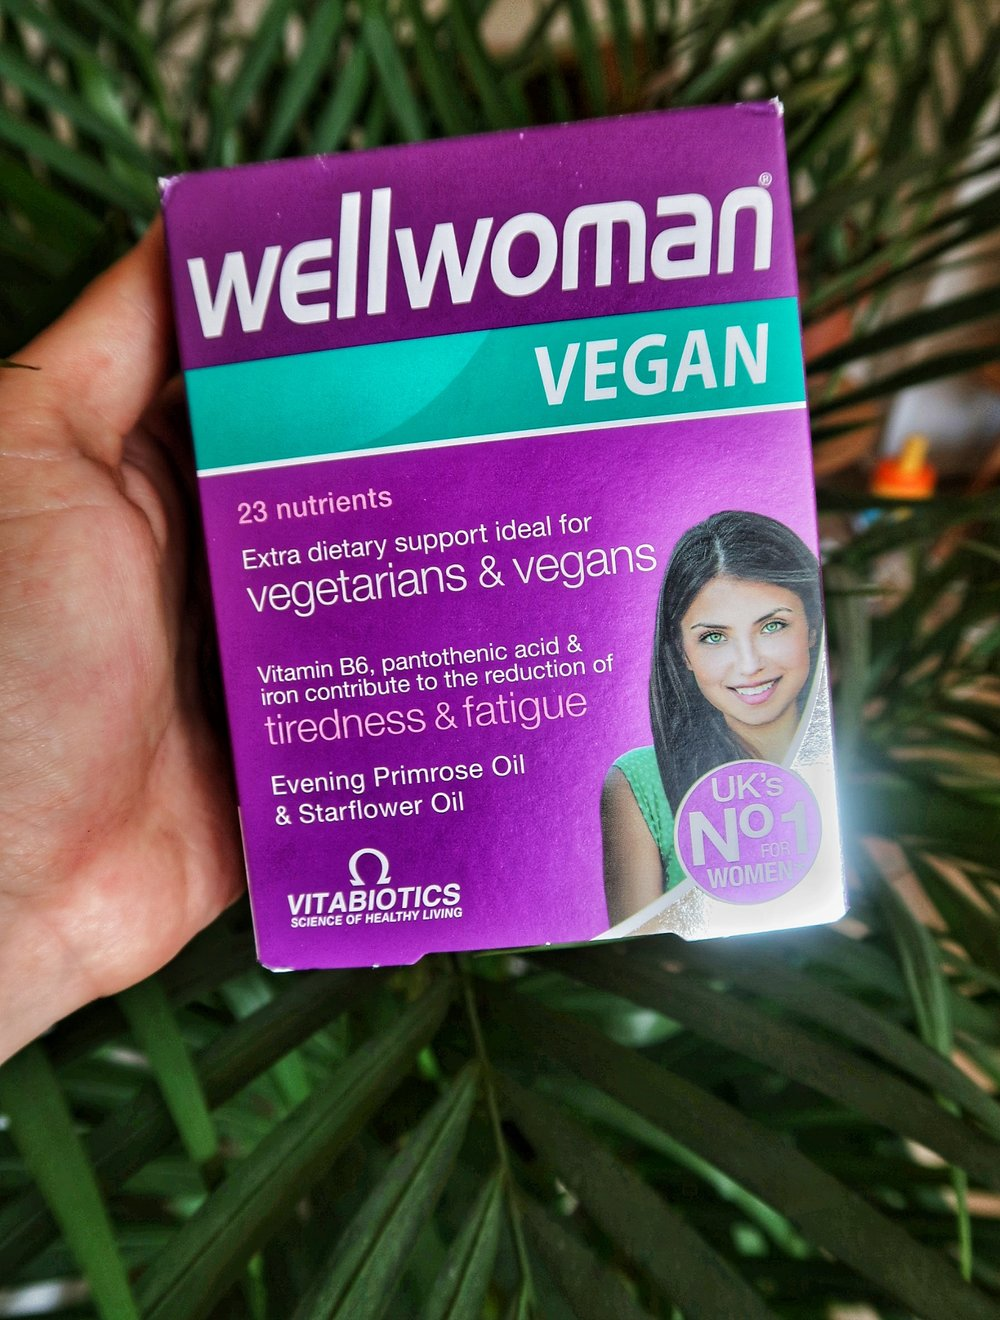 Wellwoman Vegan supplements by Vitabiotics